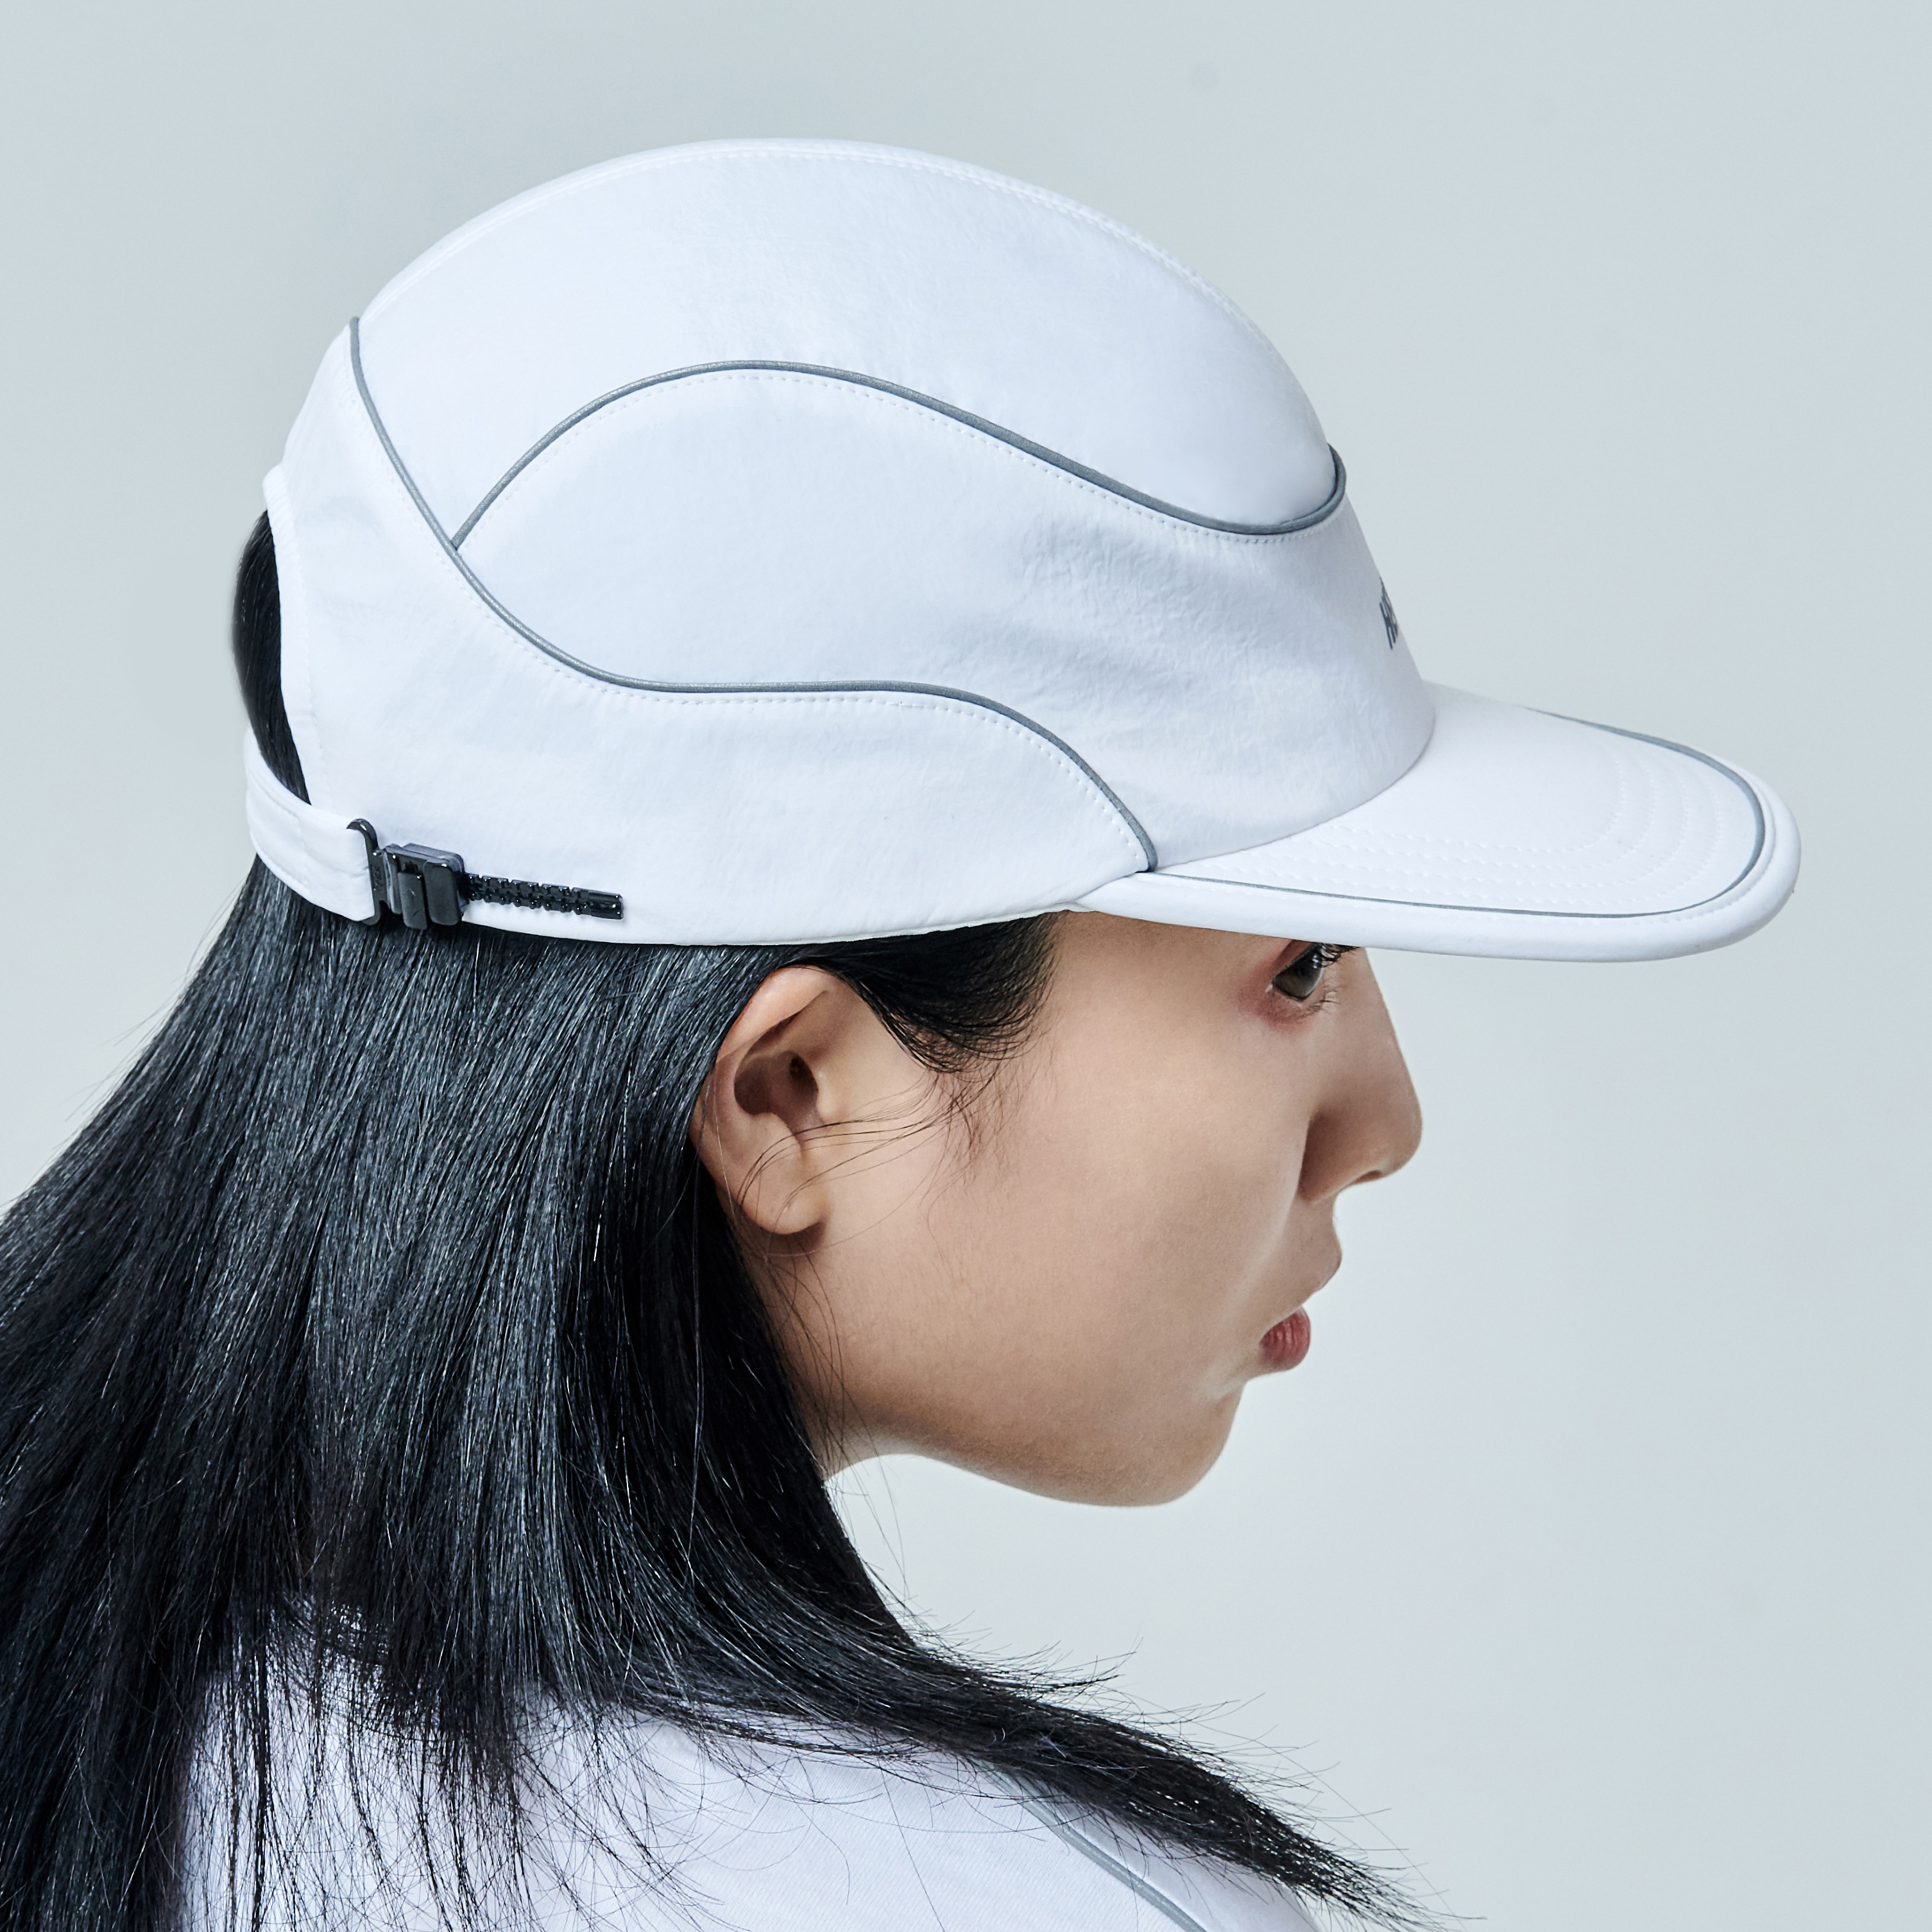 H59 ROUNDED CAP WITH 3M PIPPIMG - WHITE 라운디드 볼캡 모자